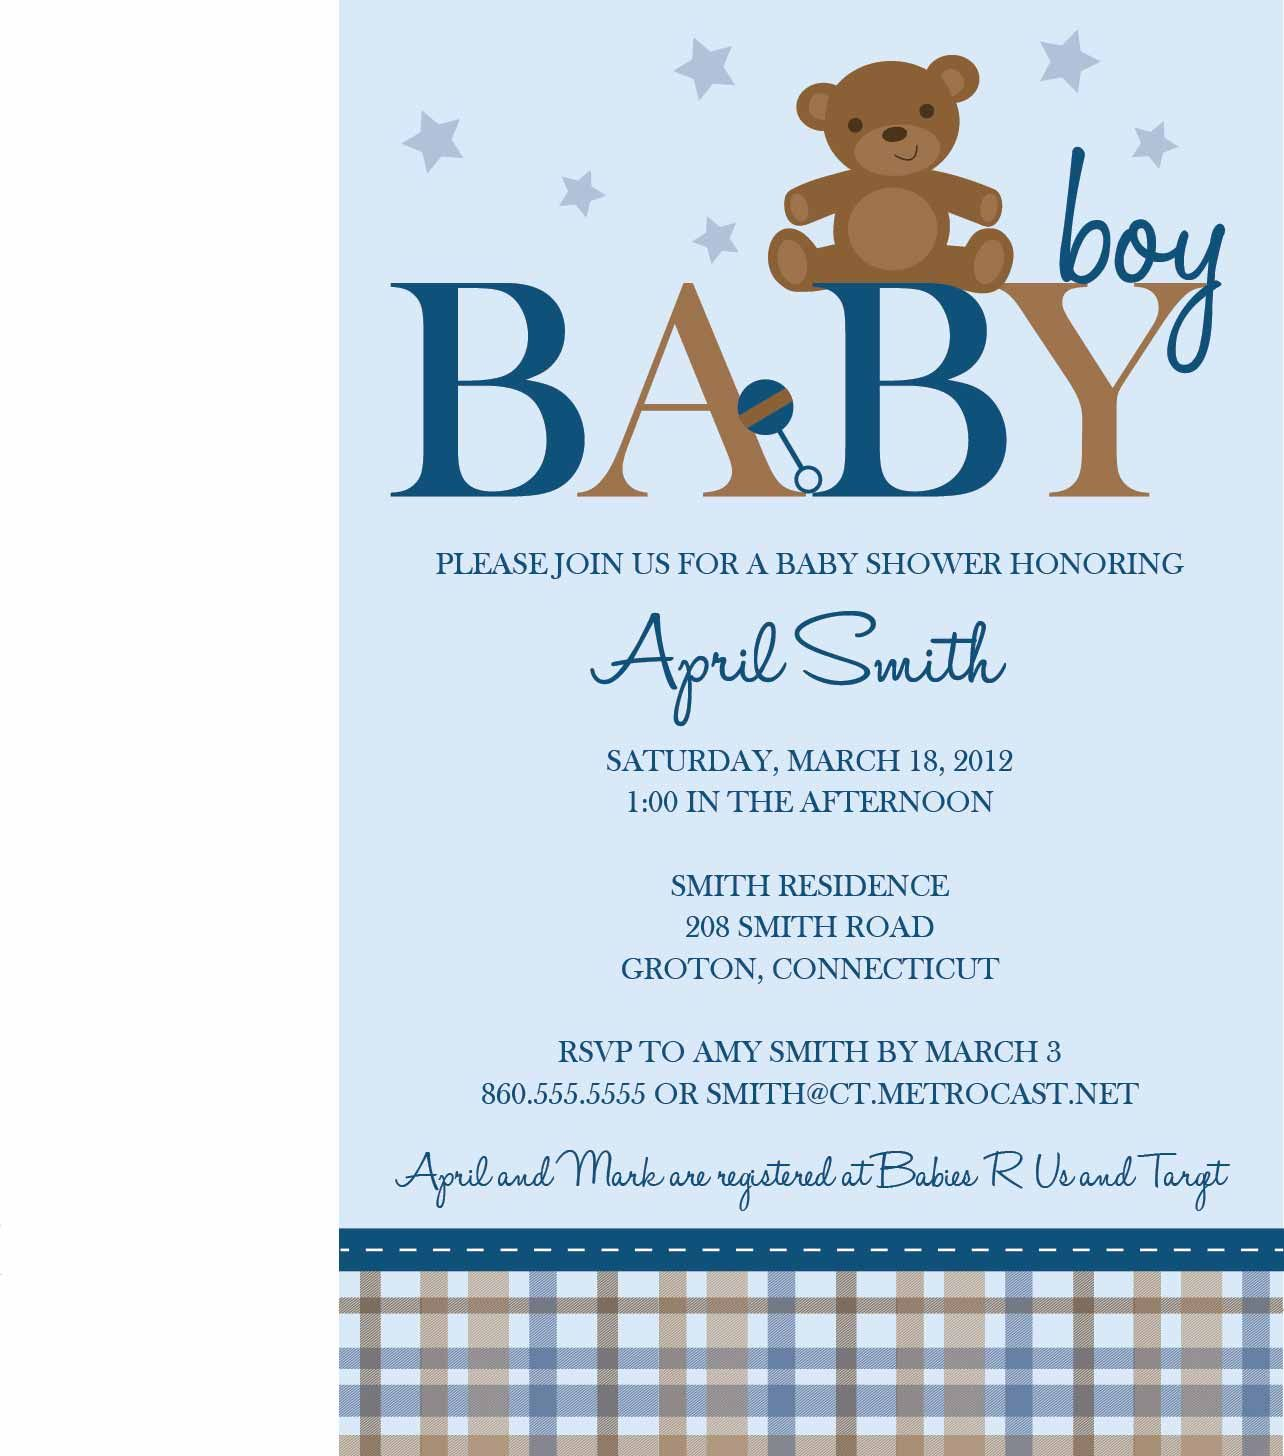 Baby Shower Invitations For Boys Template Teddy Bear Baby Shower Invitations Boy Shower Invitations Baby Boy Invitations